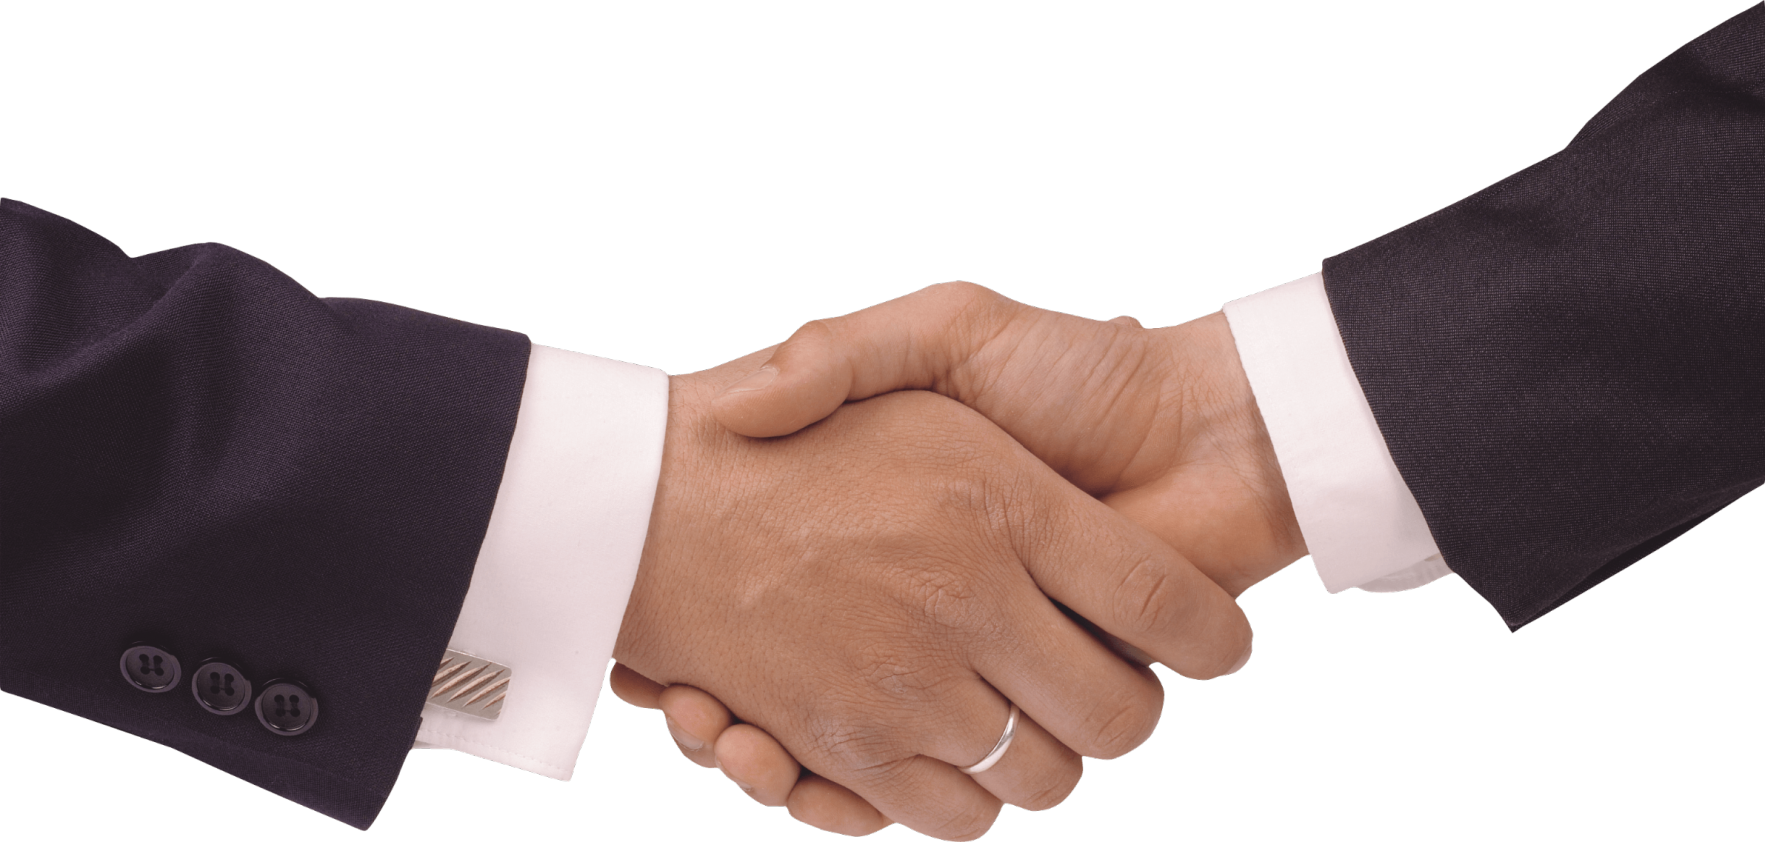 gallery/41-handshake-png-hands-image-download